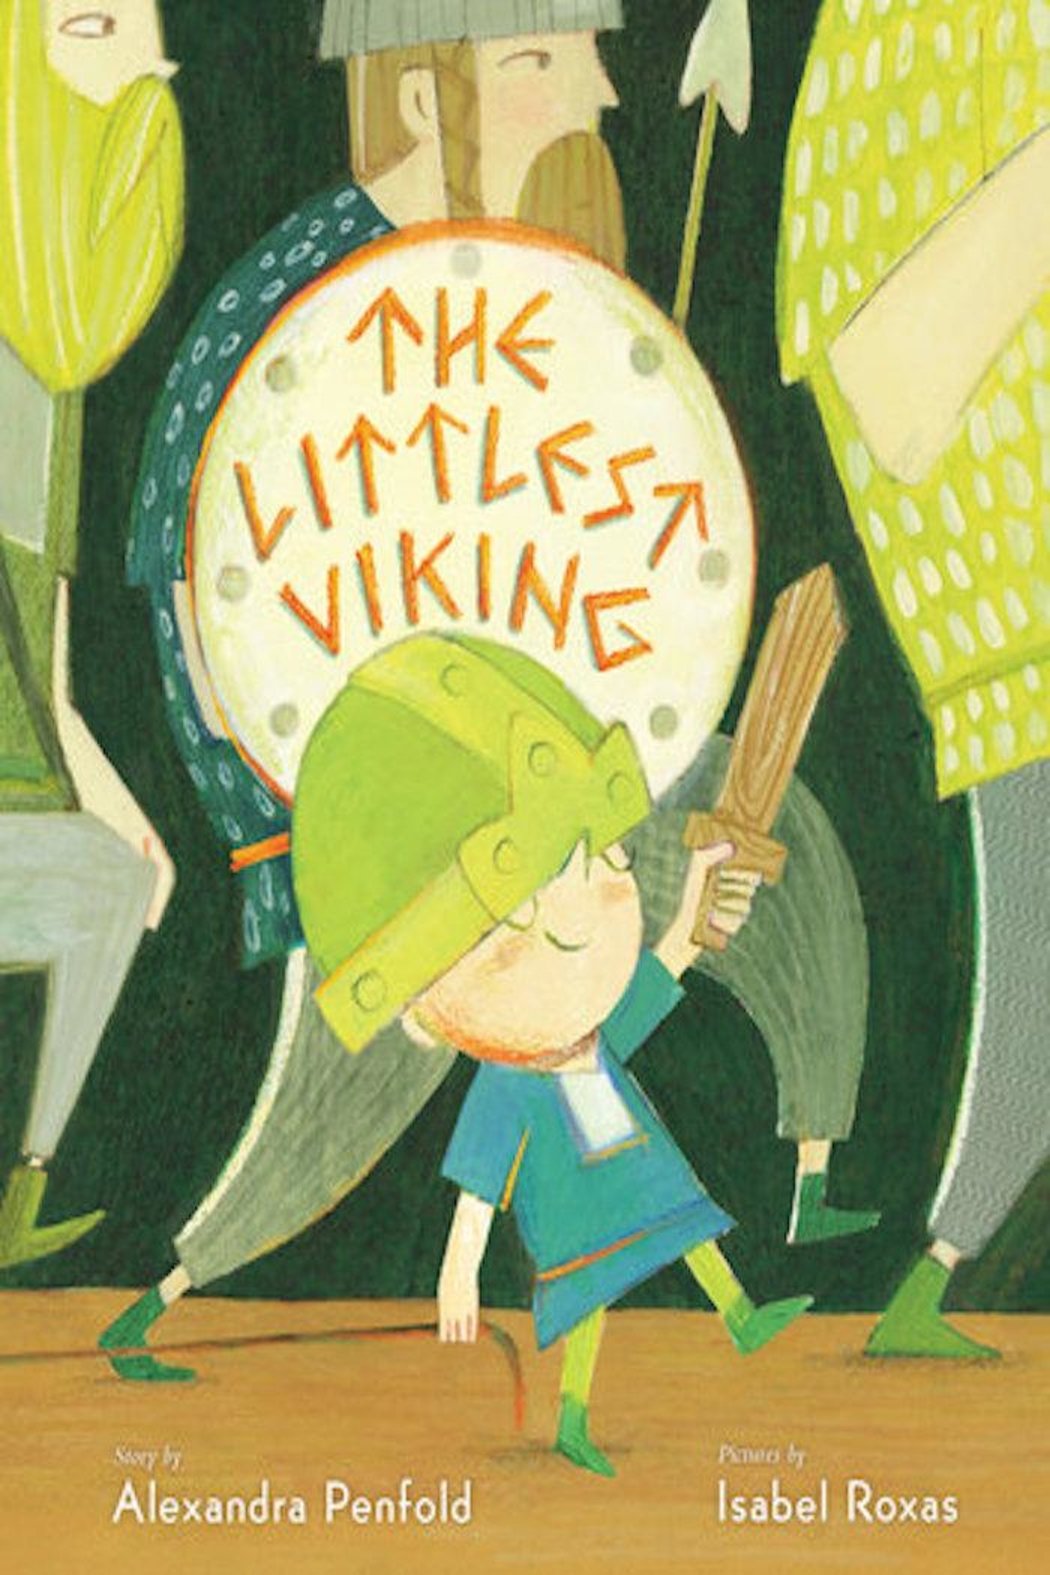 Penguin Books The Littlest Viking - Main Image